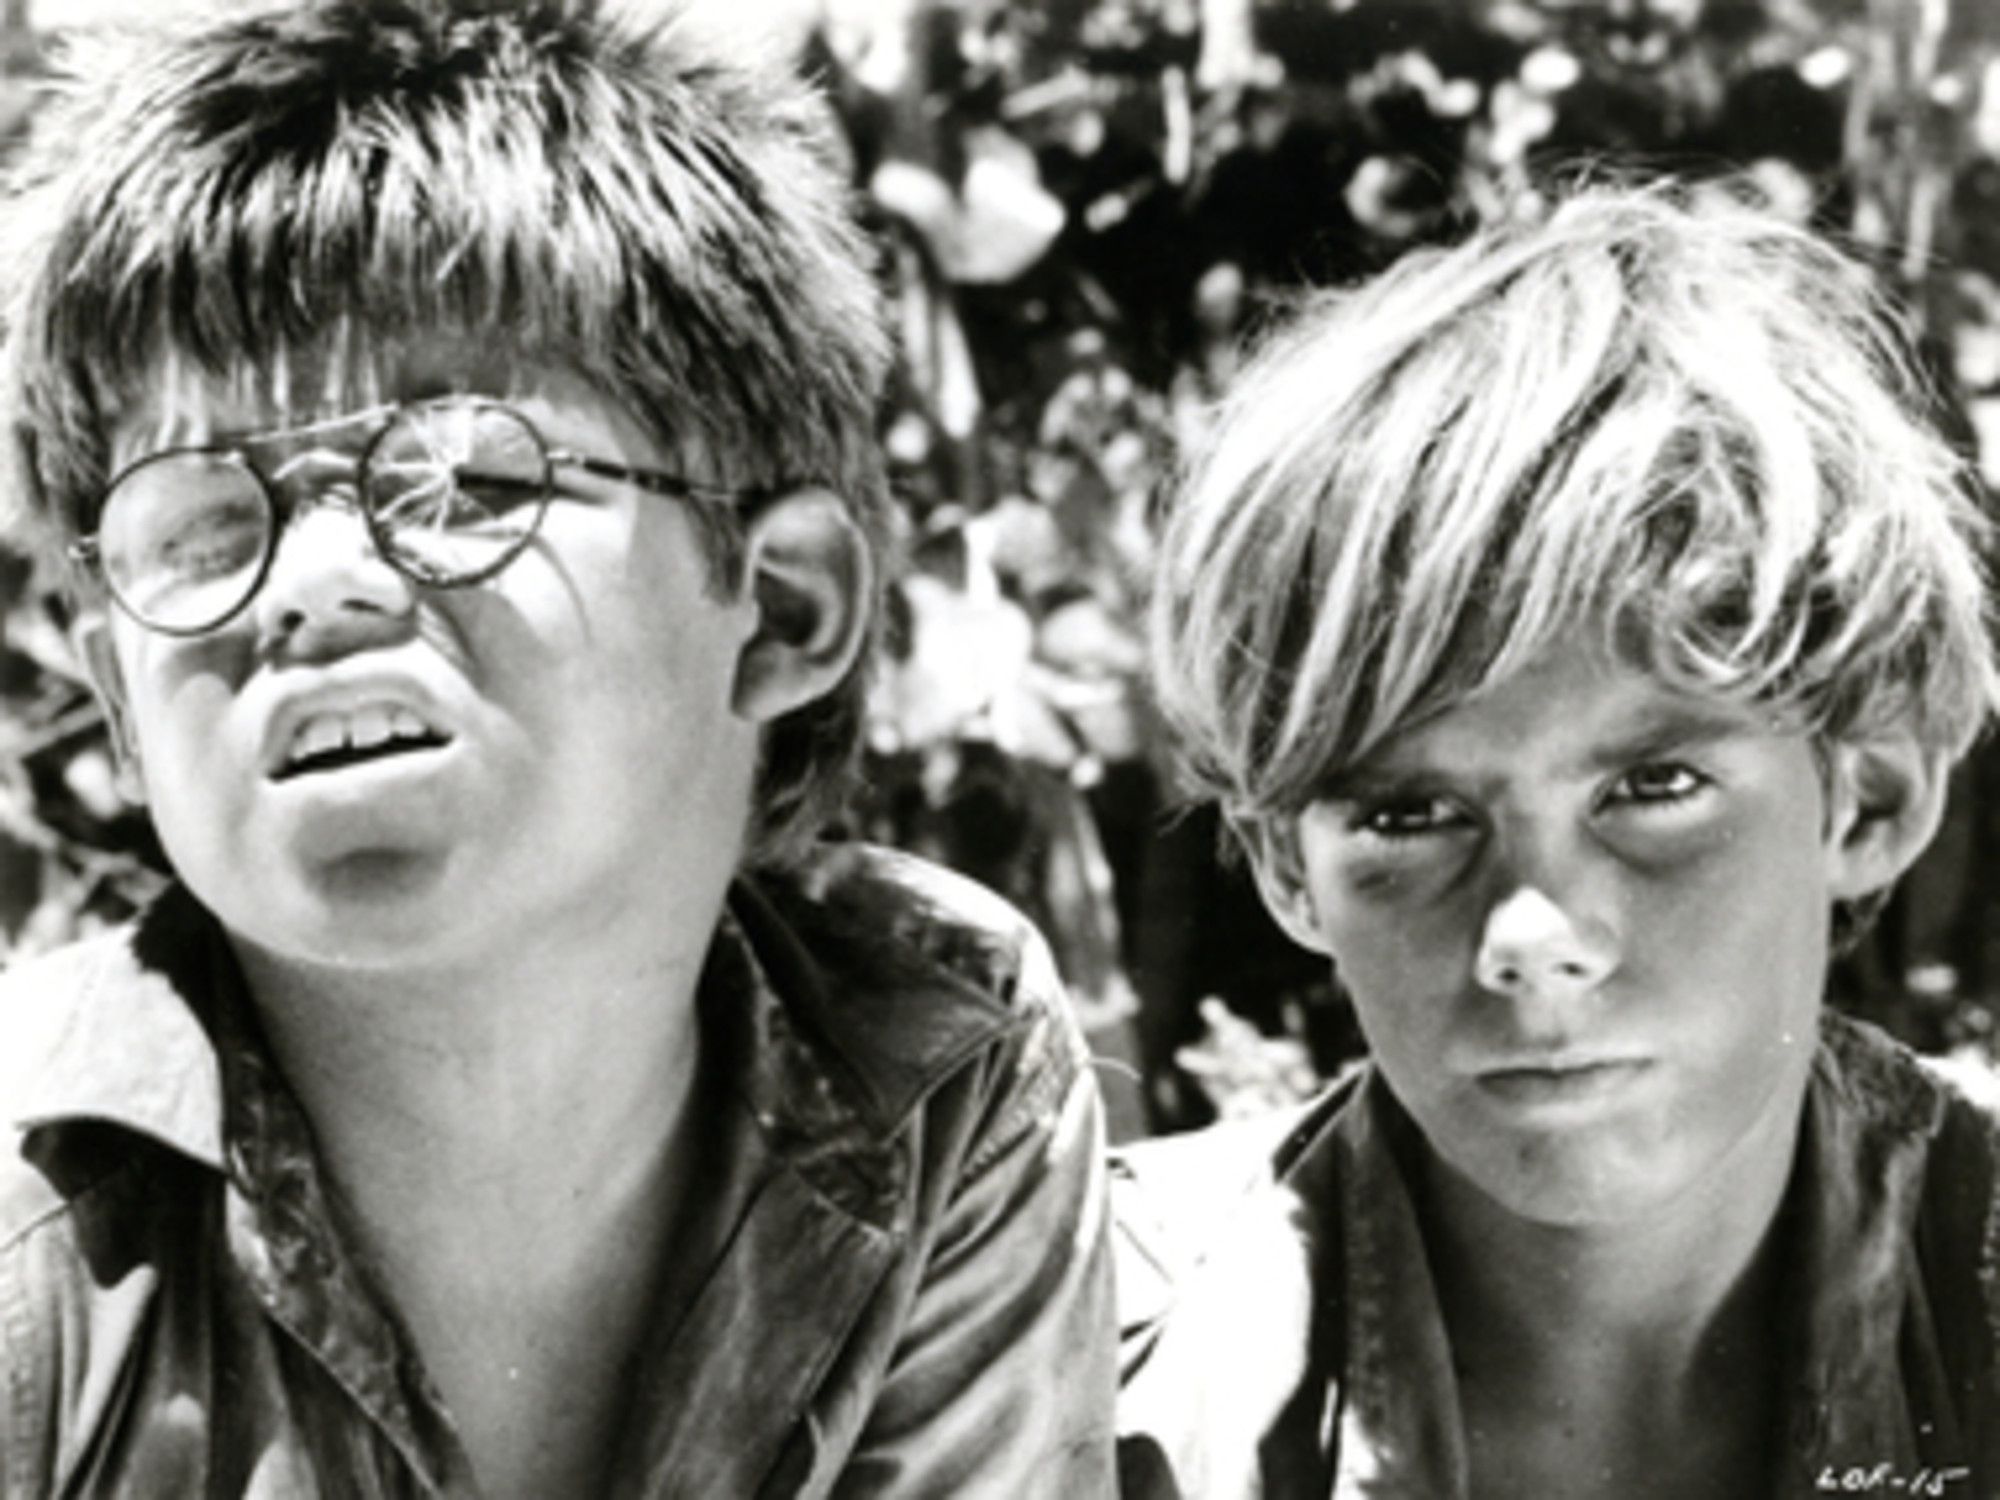 Lord of the flies movie brooks